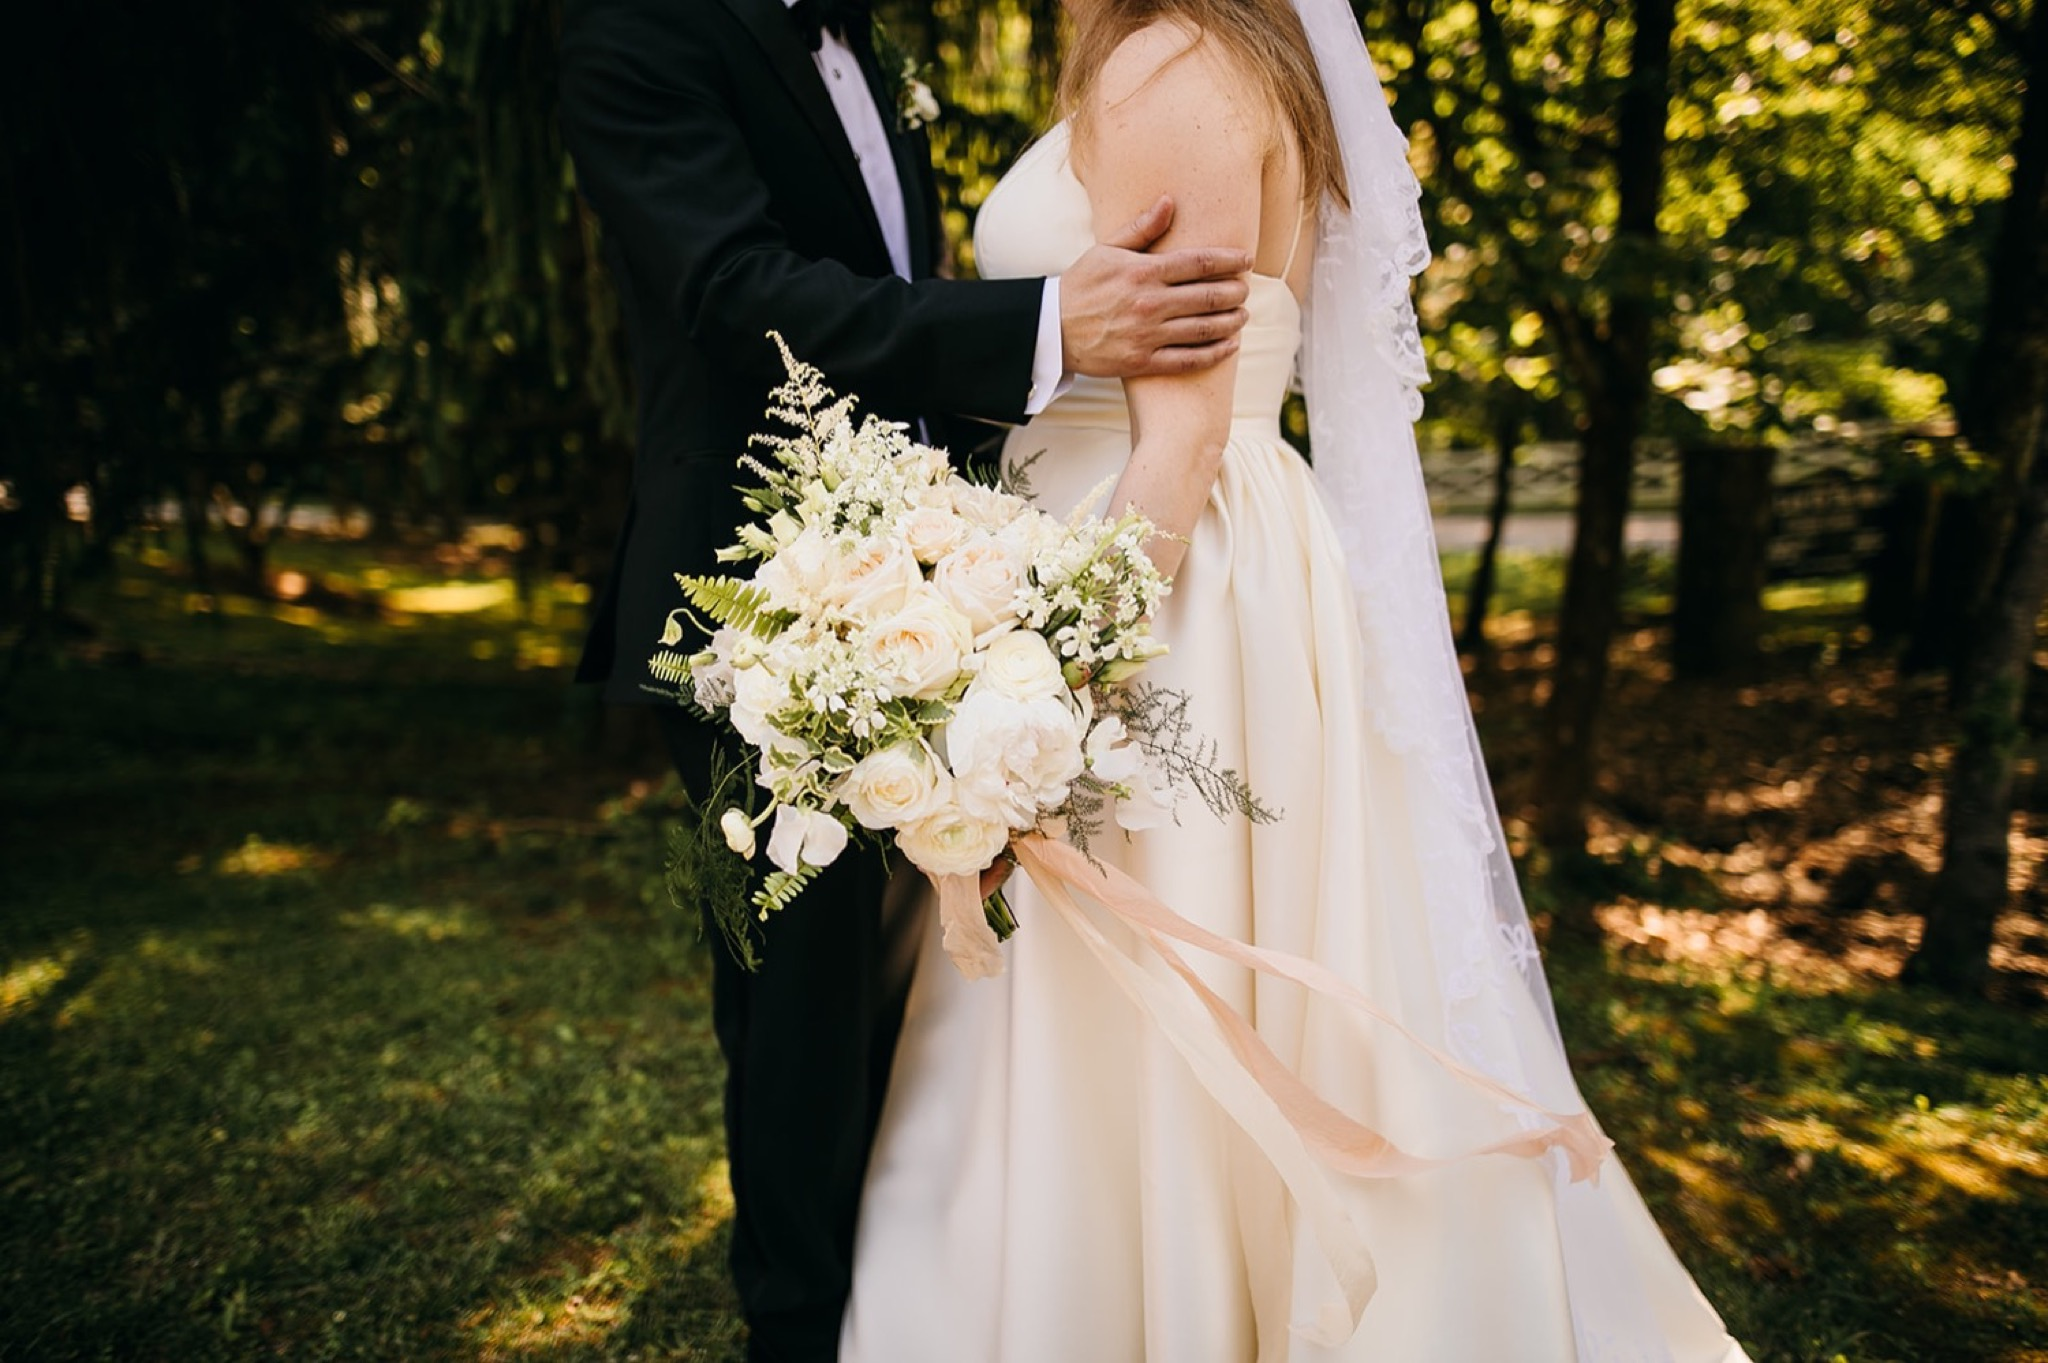 bride holds her bouquet of white flowers and light pink ribbon as groom holds her arm